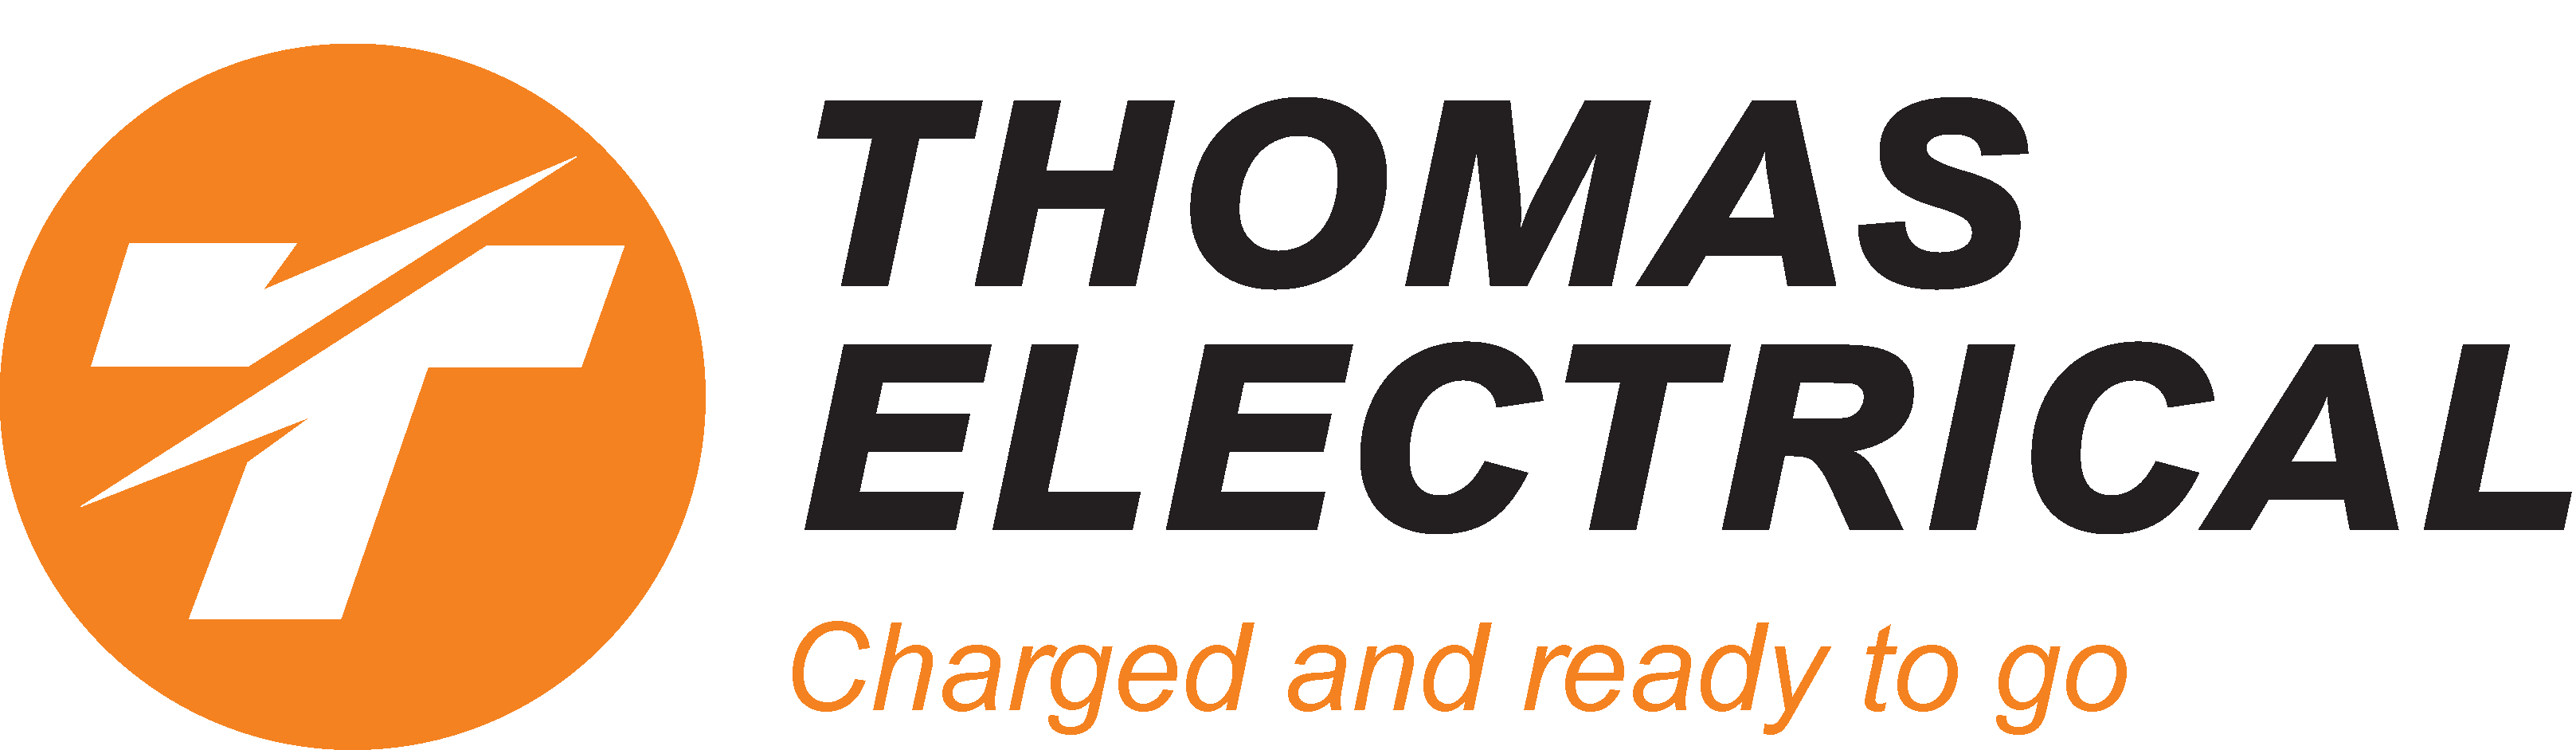 Thomas Electrical | Thomas Compliant